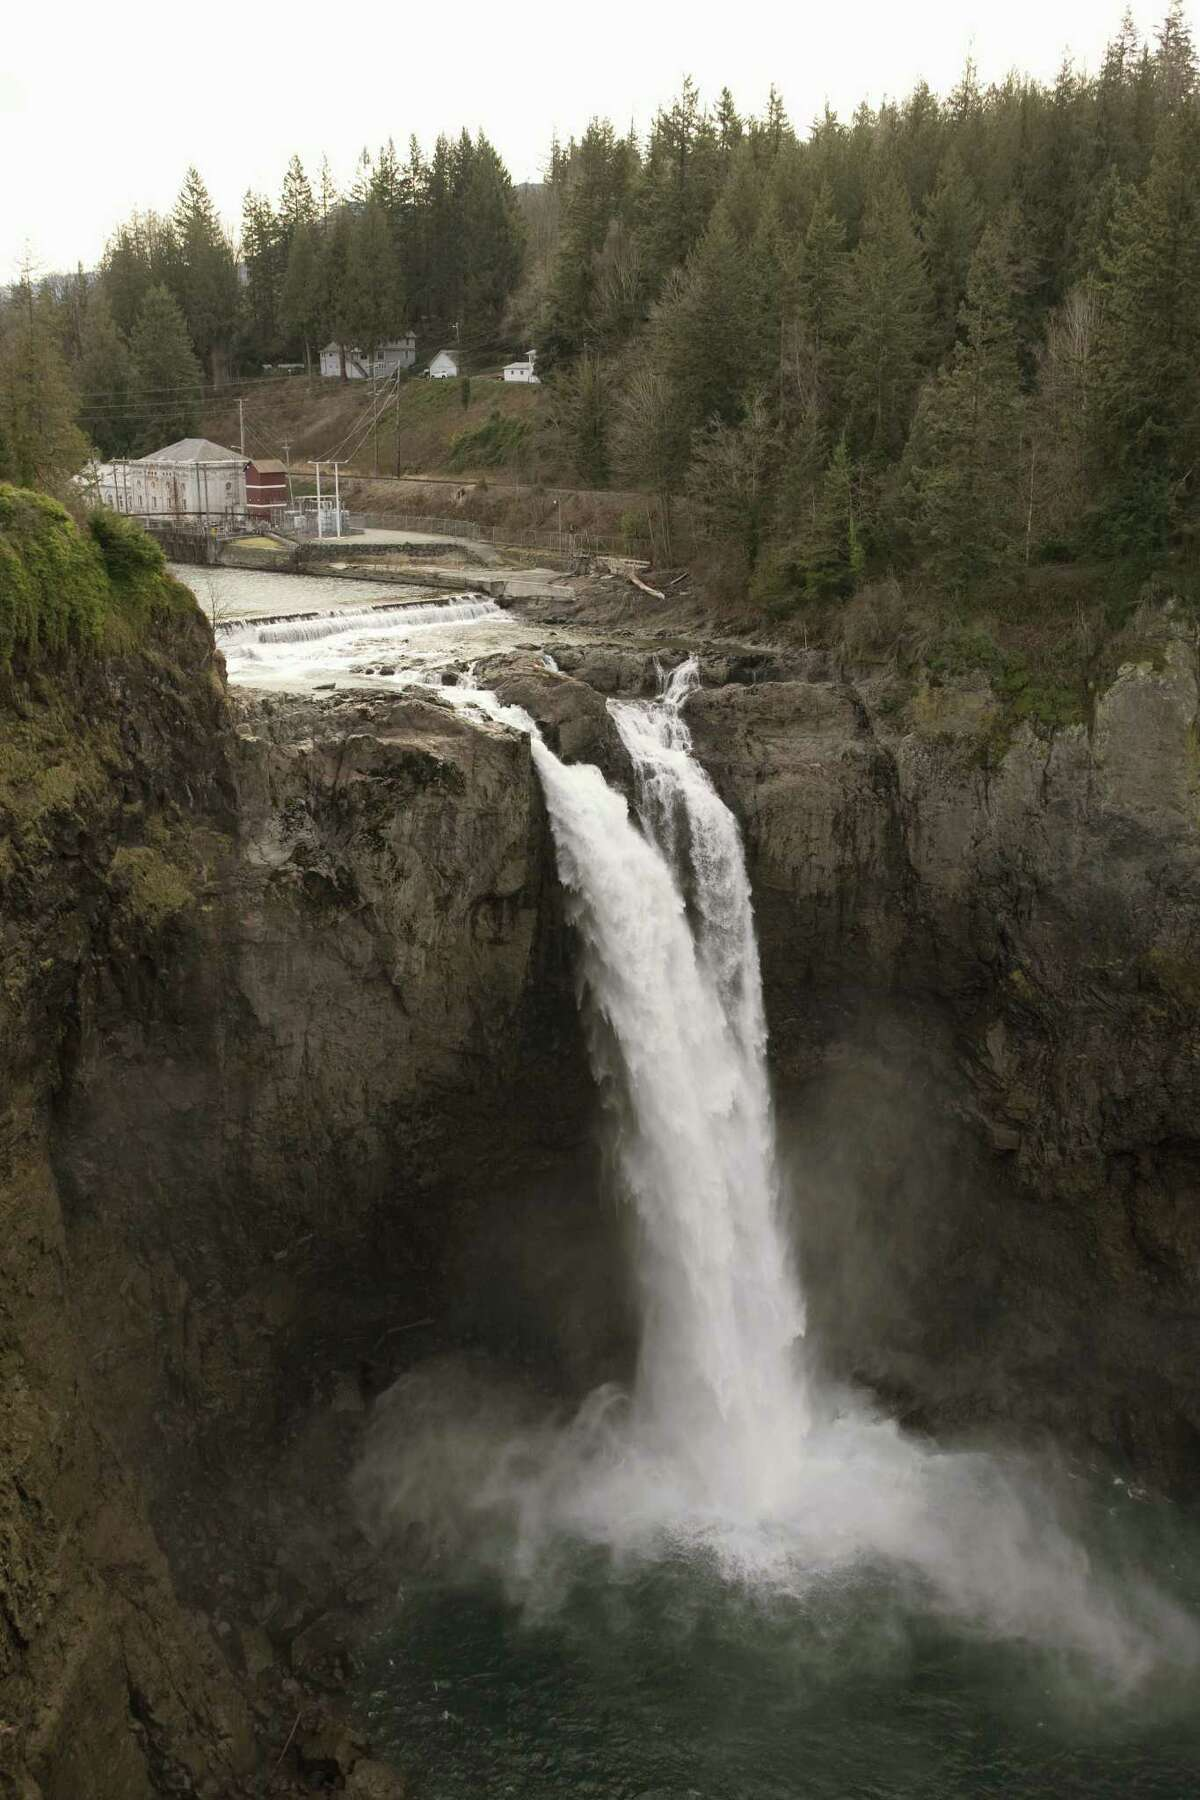 Snoqualmie Falls certainly isn't hurting King County's rank for natural beauty.